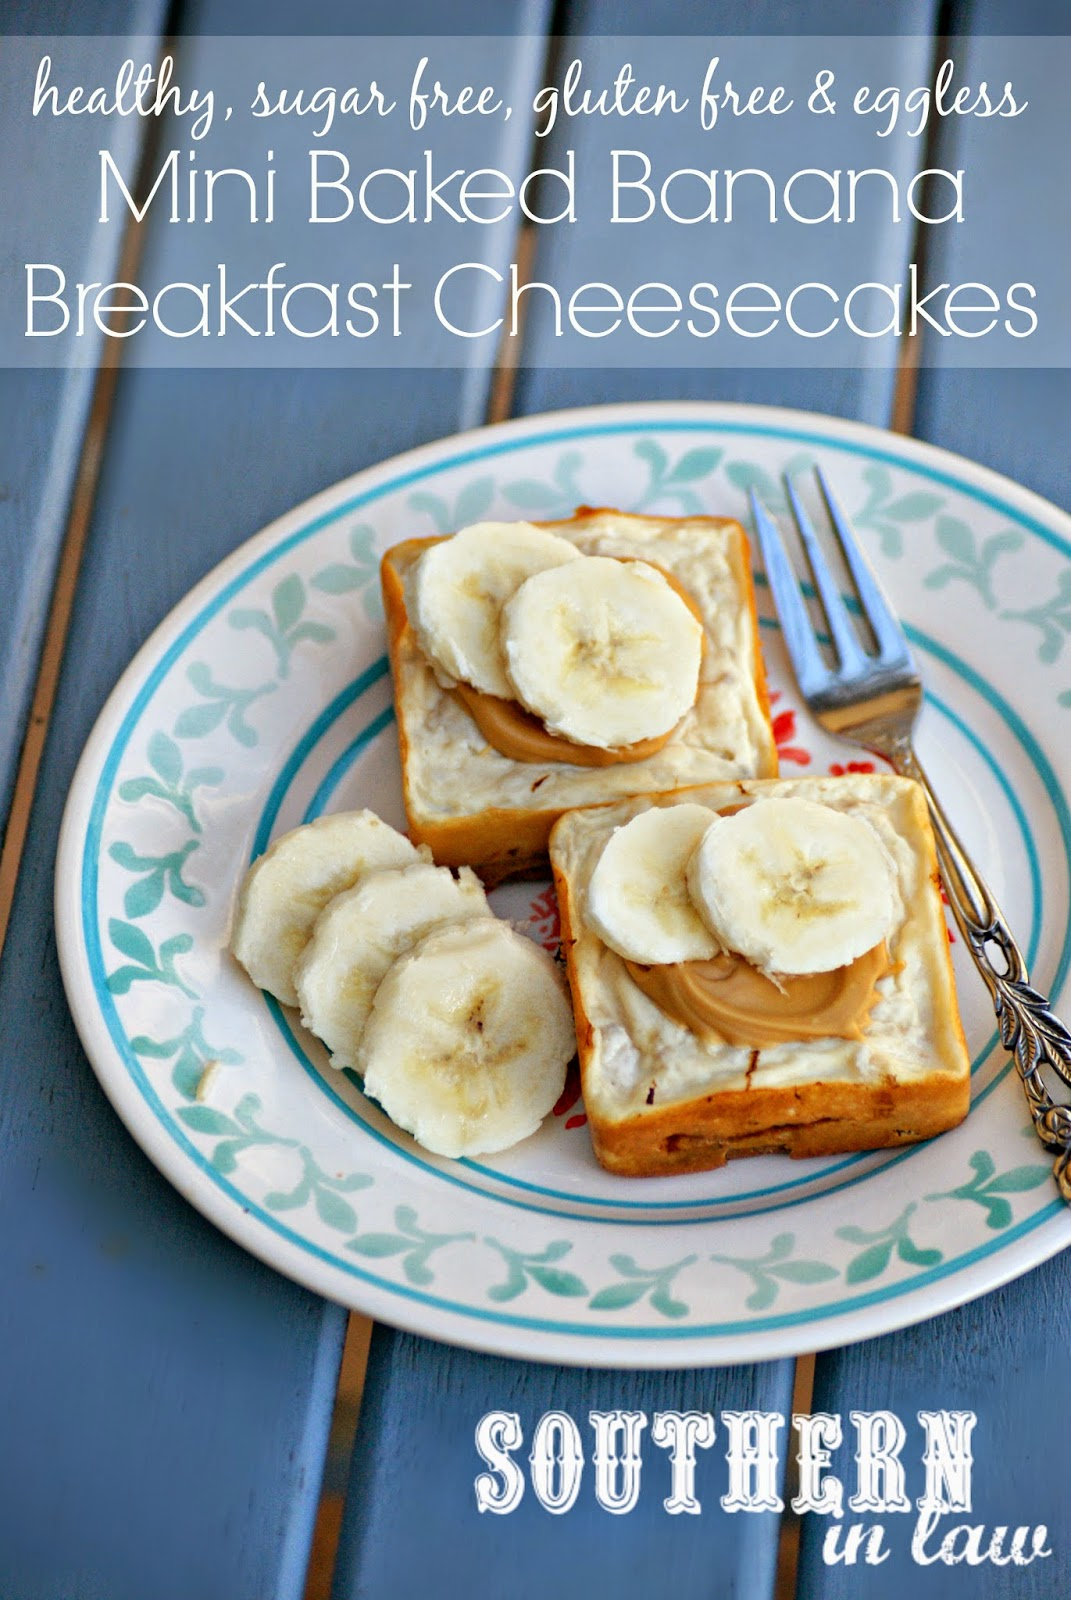 Sugar Free Banana Breakfast Cheesecakes Recipe - gluten free, sugar free, low fat, healthy, eggless, egg free